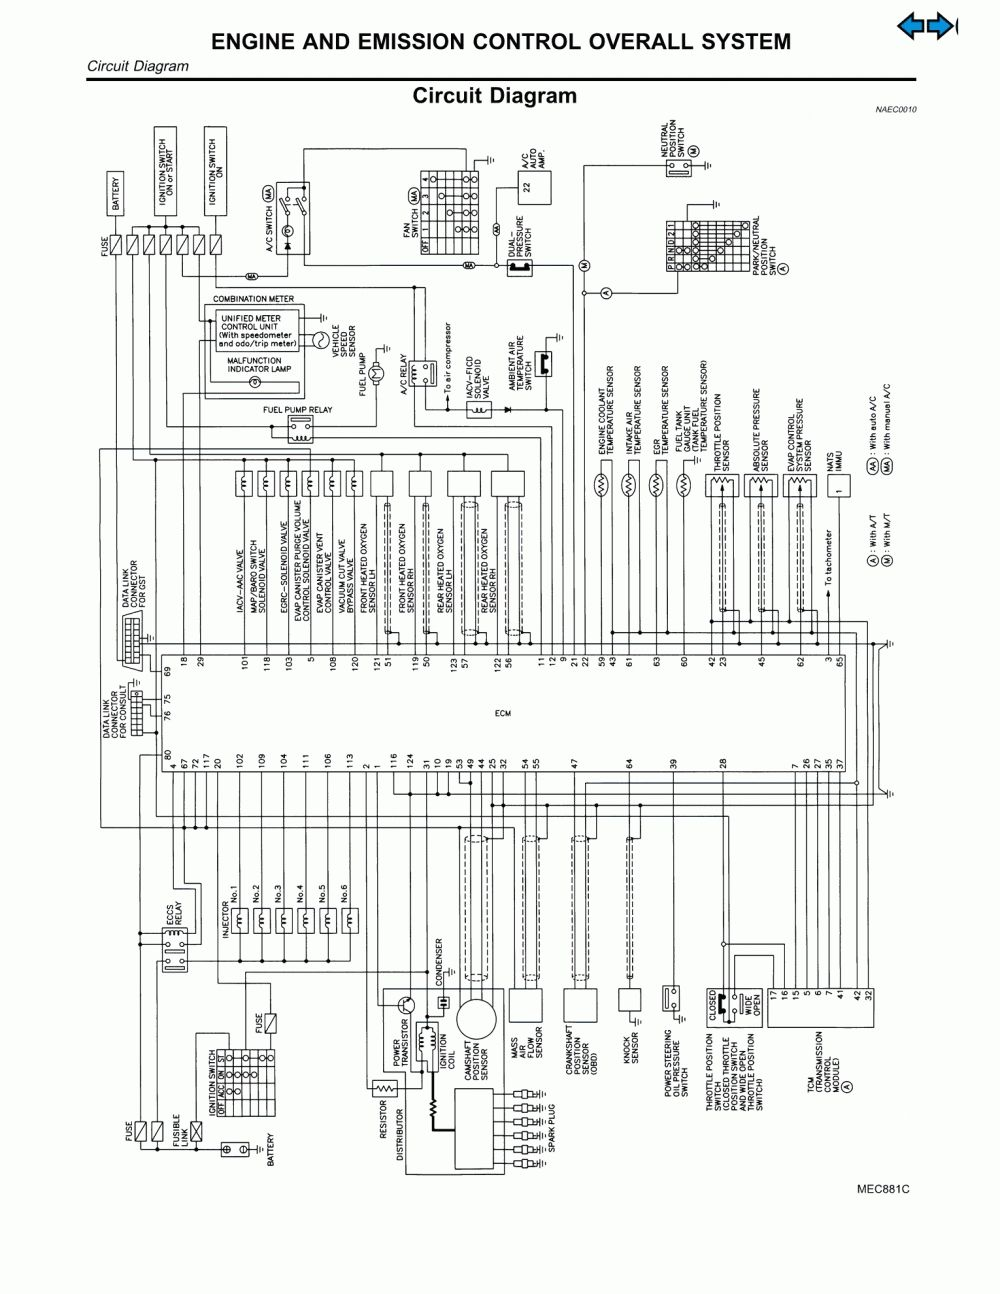 Nissan Leaf Battery Wiring Diagram Wiringdiagramorg Control Panel And Harness For Hot Rods